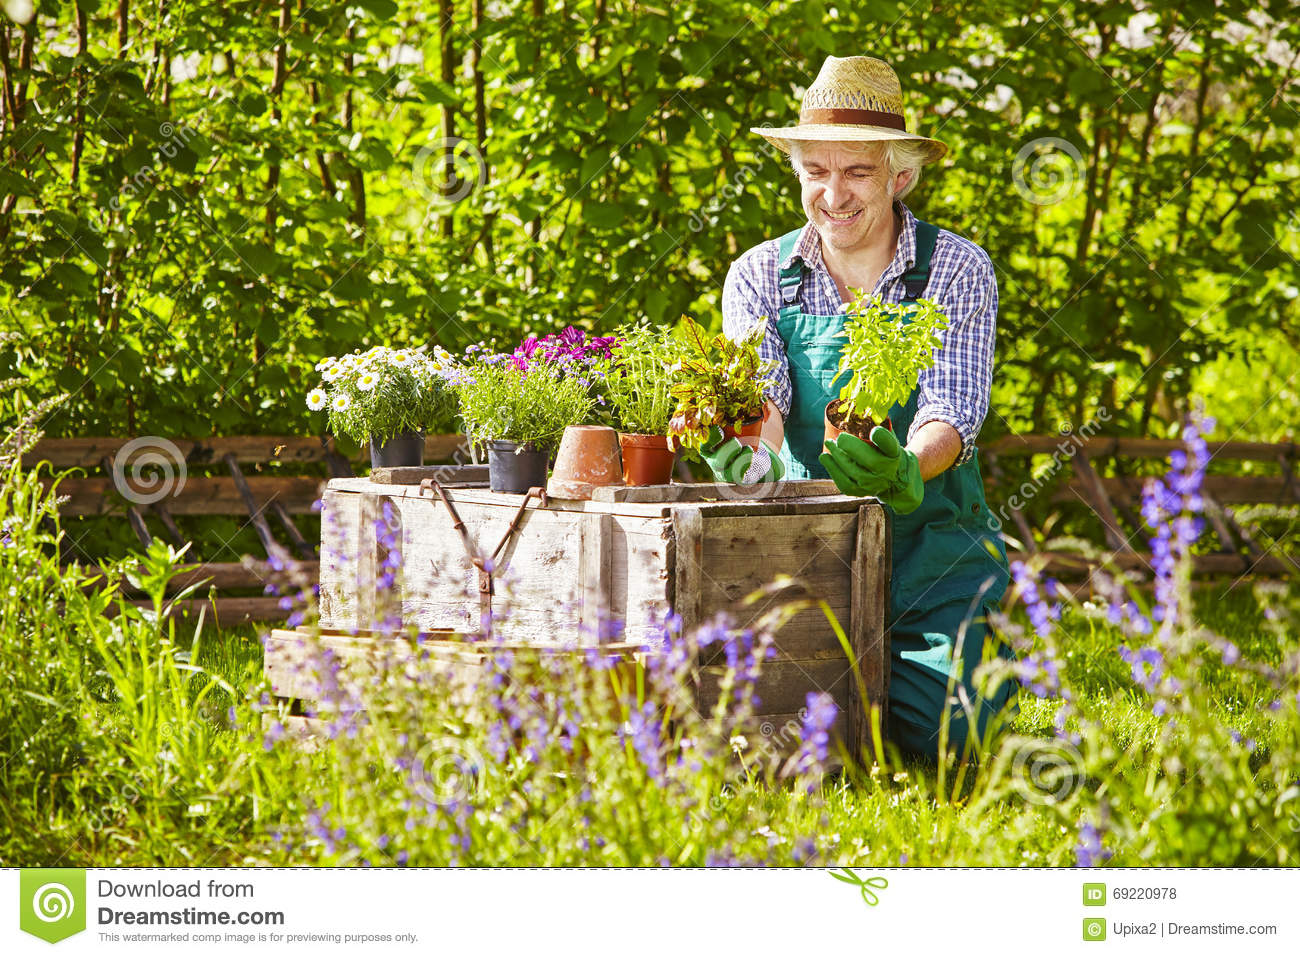 Le chapeau de paille de jardinier plante le jardin photo stock image 69220978 for Plante de jardin